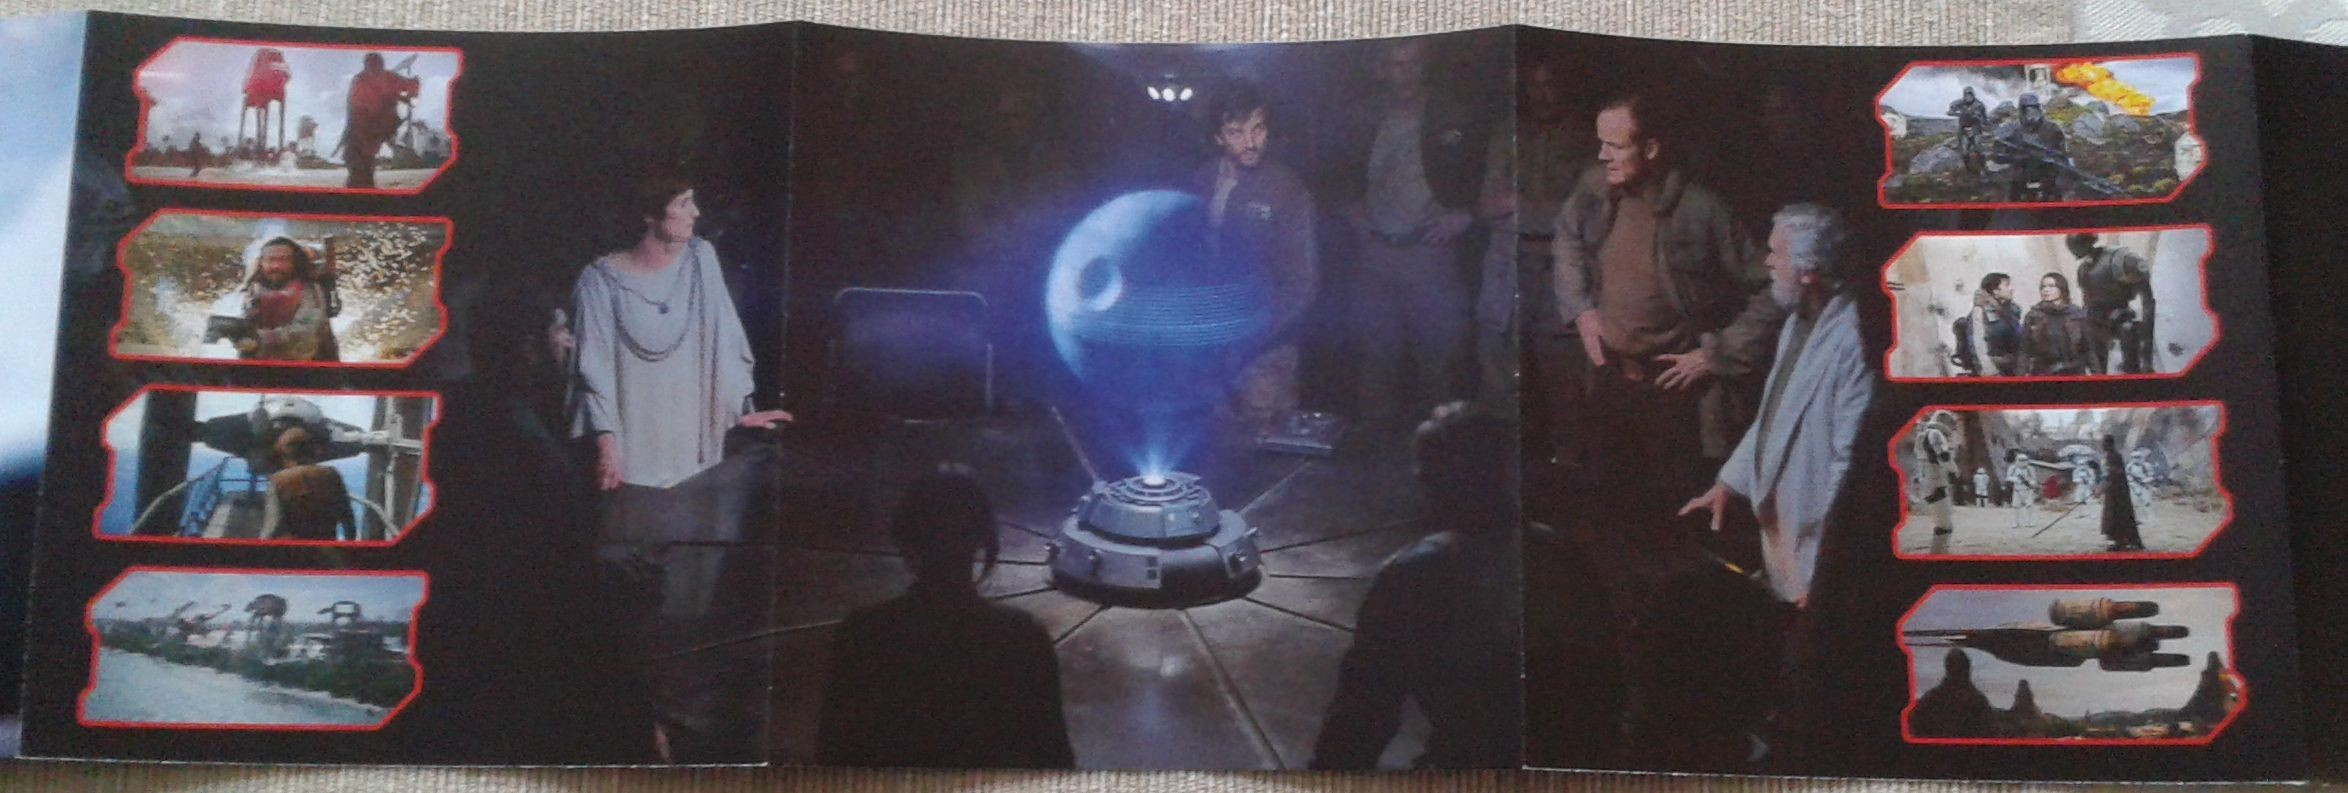 8. Rogue 1 SW booklet 4.jpg